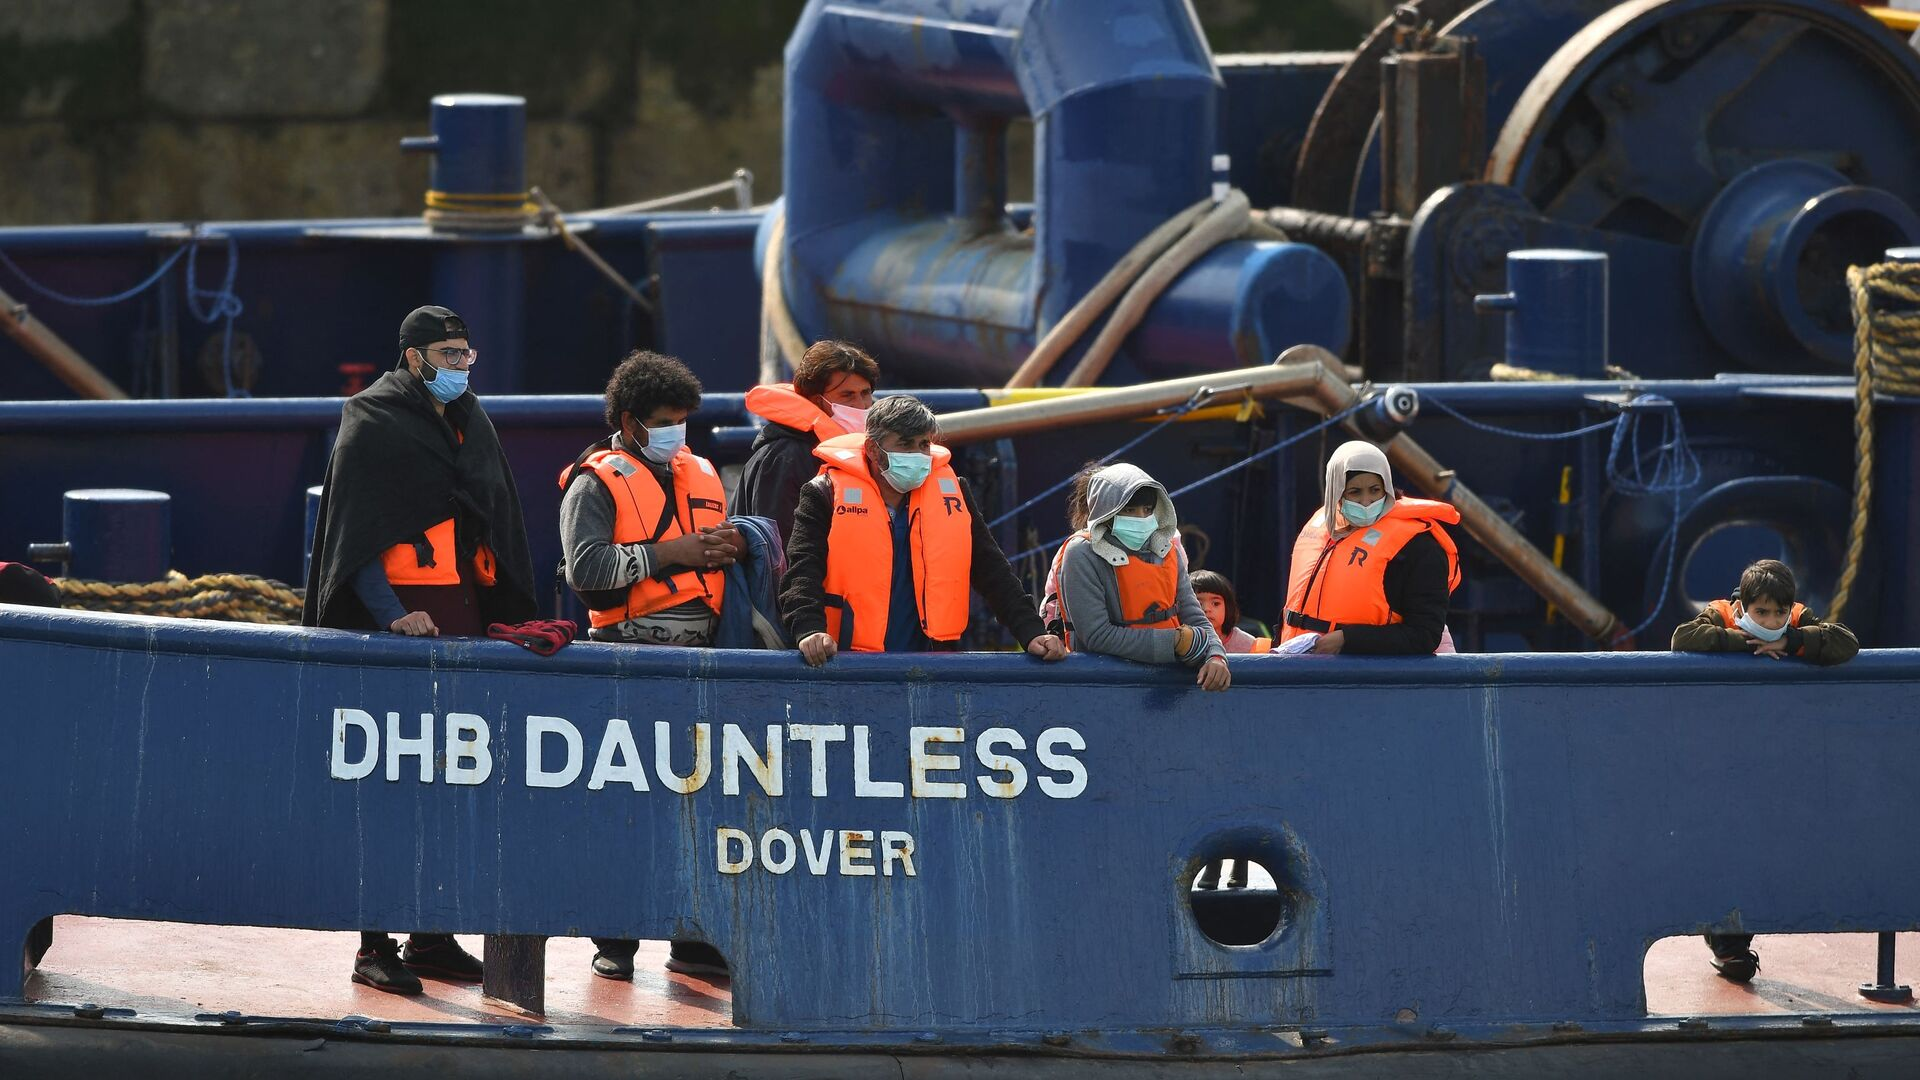 Waleed (3L), 29, a Kuwaiti migrant, stands with other migrants onboard the DHB Dauntless tug boat as they are brought to shore by the UK Border Force after illegally crossing the English Channel from France on a dinghy on September 11, 2020, in the marina at Dover, on the south coast of England - Sputnik International, 1920, 25.07.2021